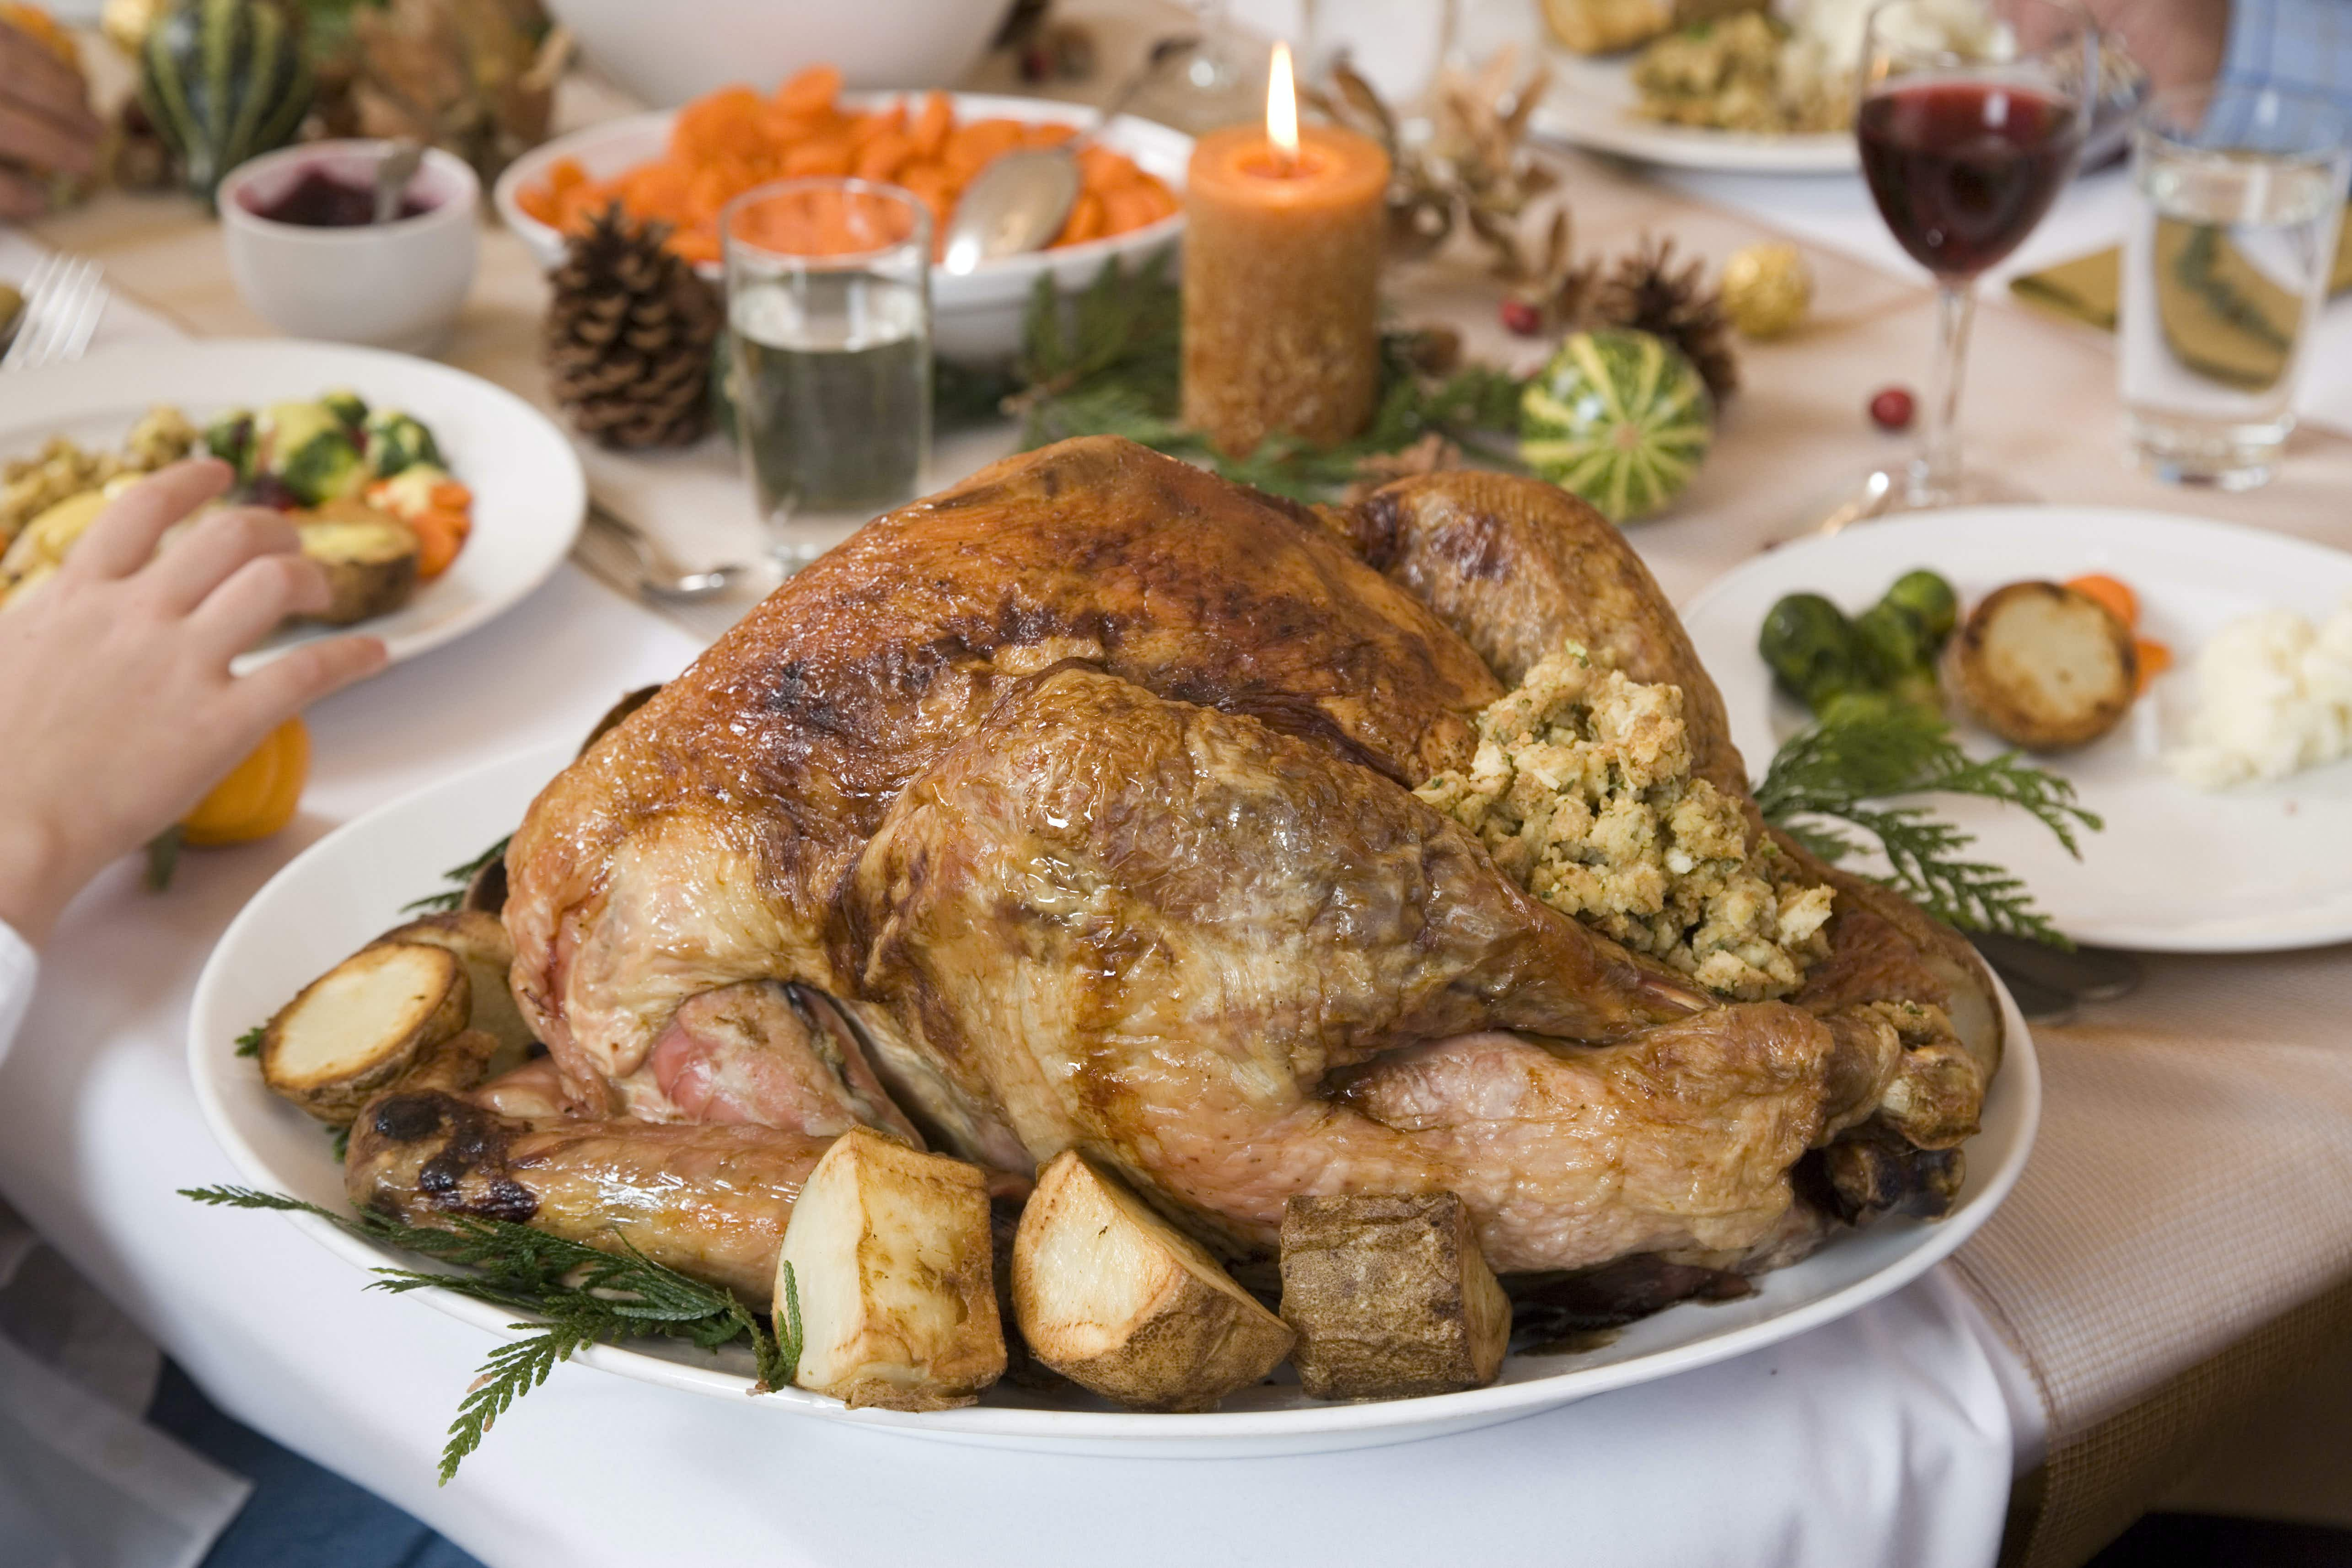 Closeup of a baked turkey filled with stuffing and surrounded by small baked potatoes. Green herbs garnish the turkey. In the background are a series of plates with food and glasses of wine and water and a large bowl of carrots.